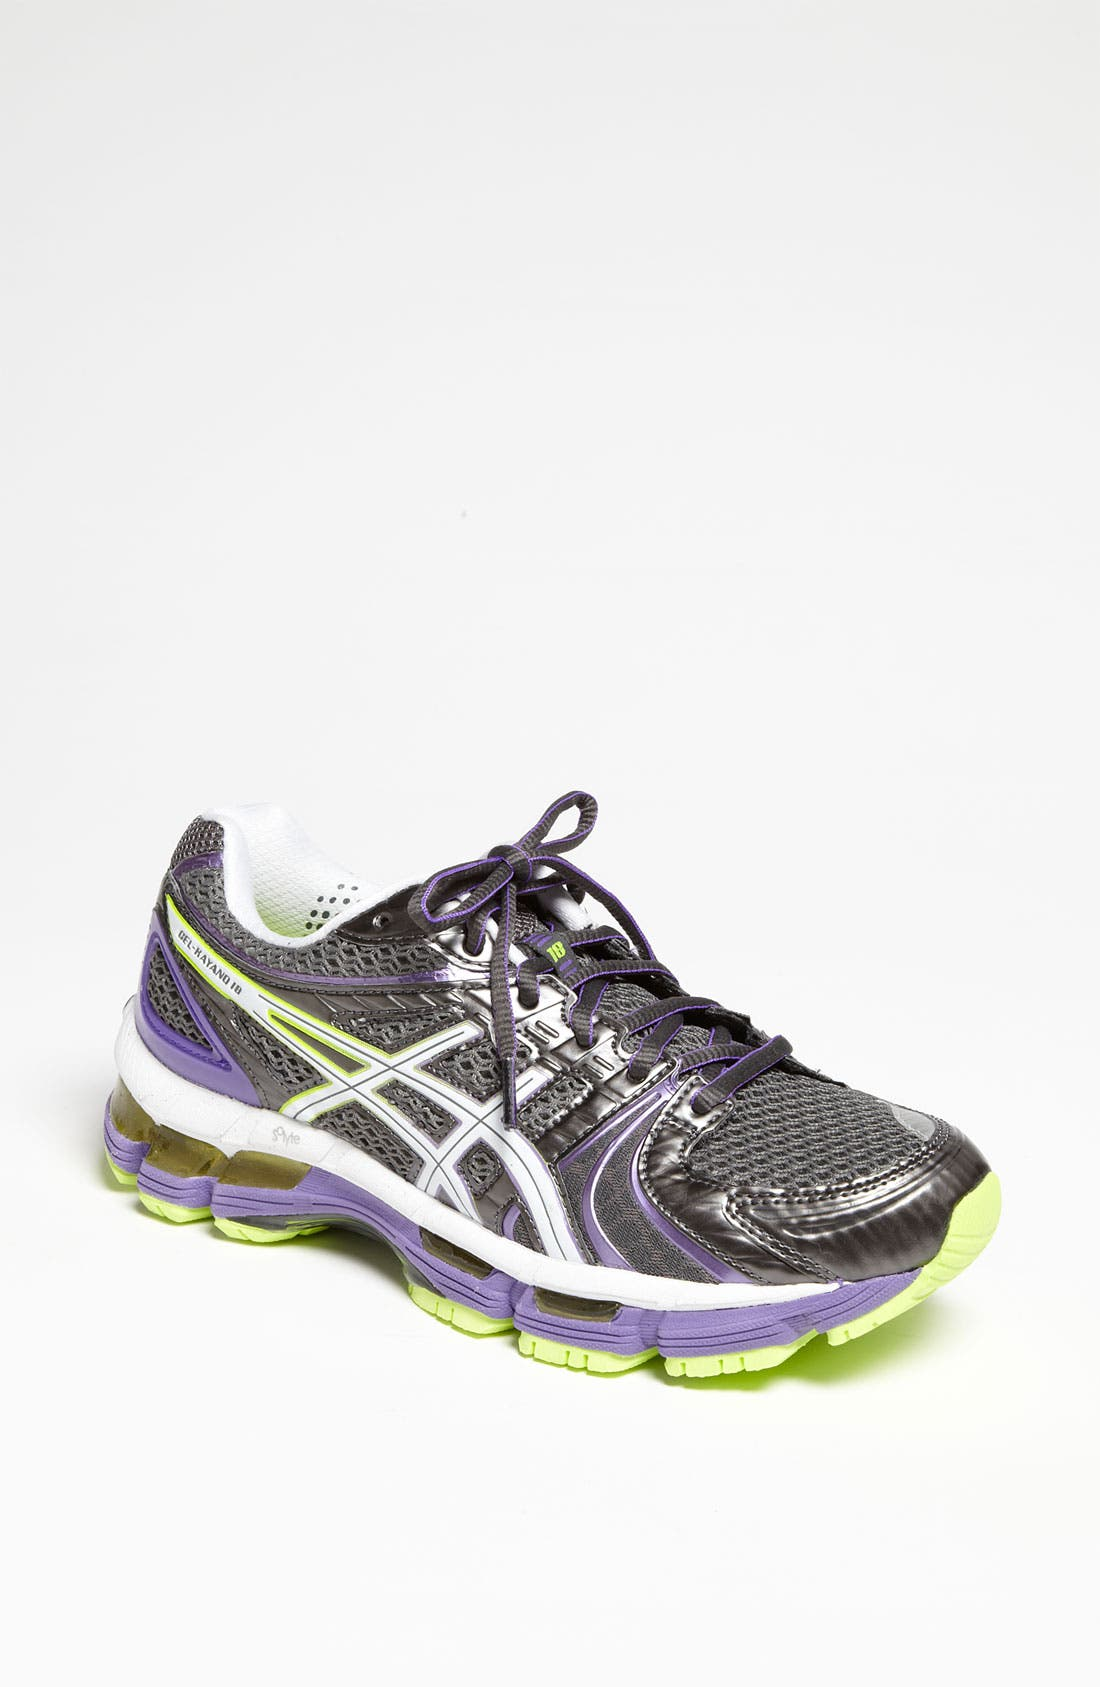 Alternate Image 1 Selected - ASICS® 'GEL-Kayano 18' Running Shoe (Women) (Regular Retail Price: $144.95)